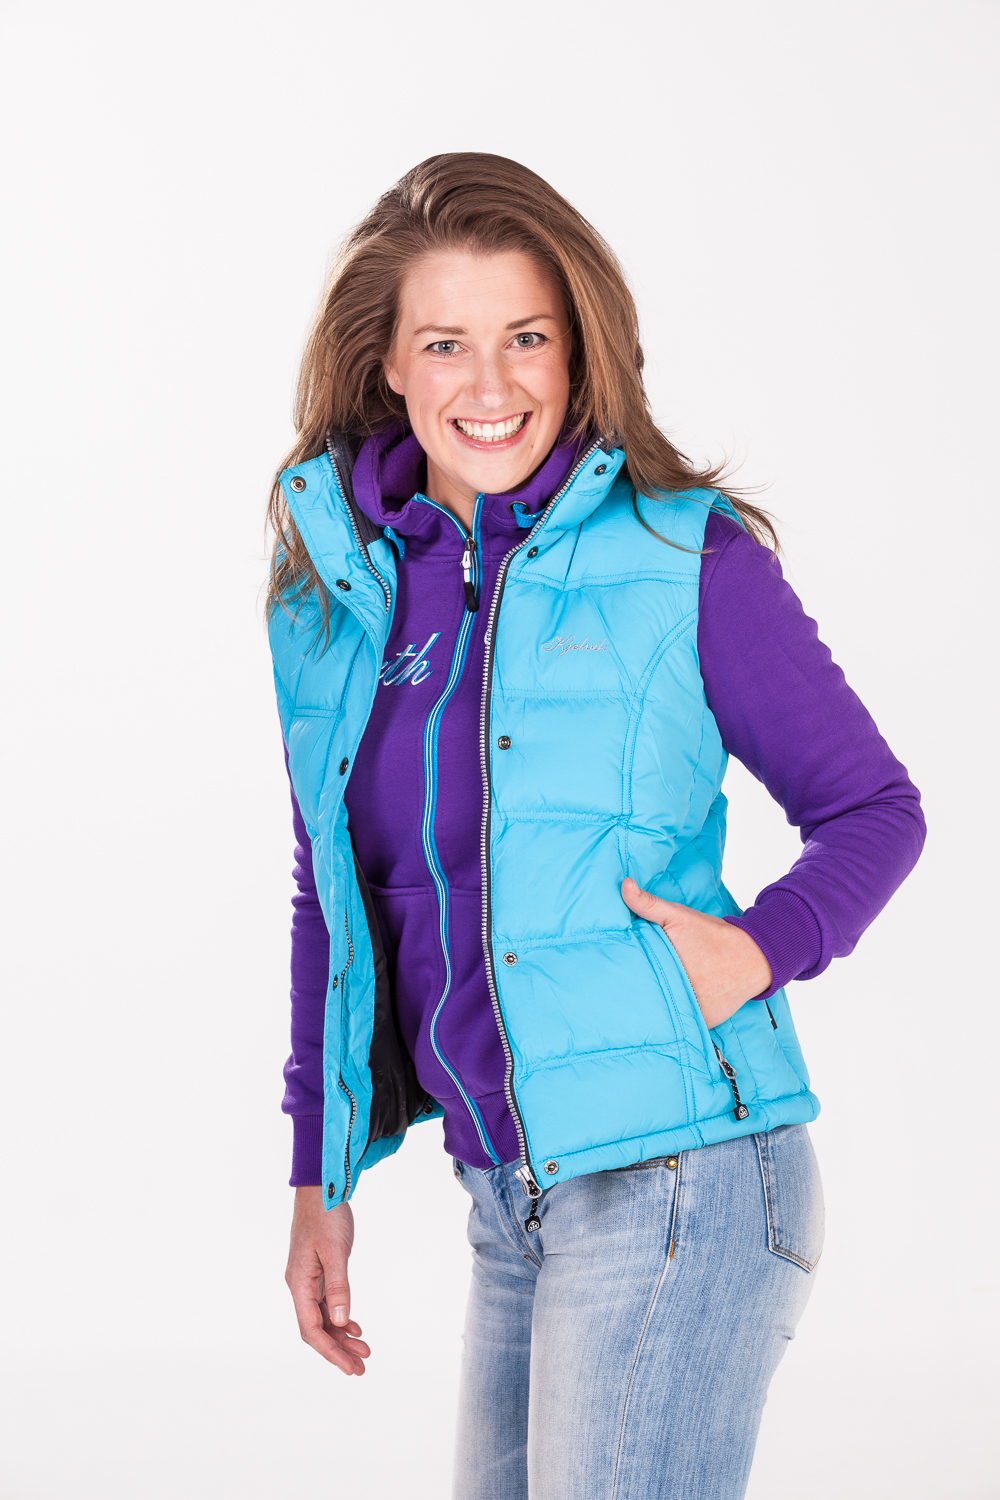 Kledingfotografie op model in de fotostudio voor Kjelvik Outdoor Clothing